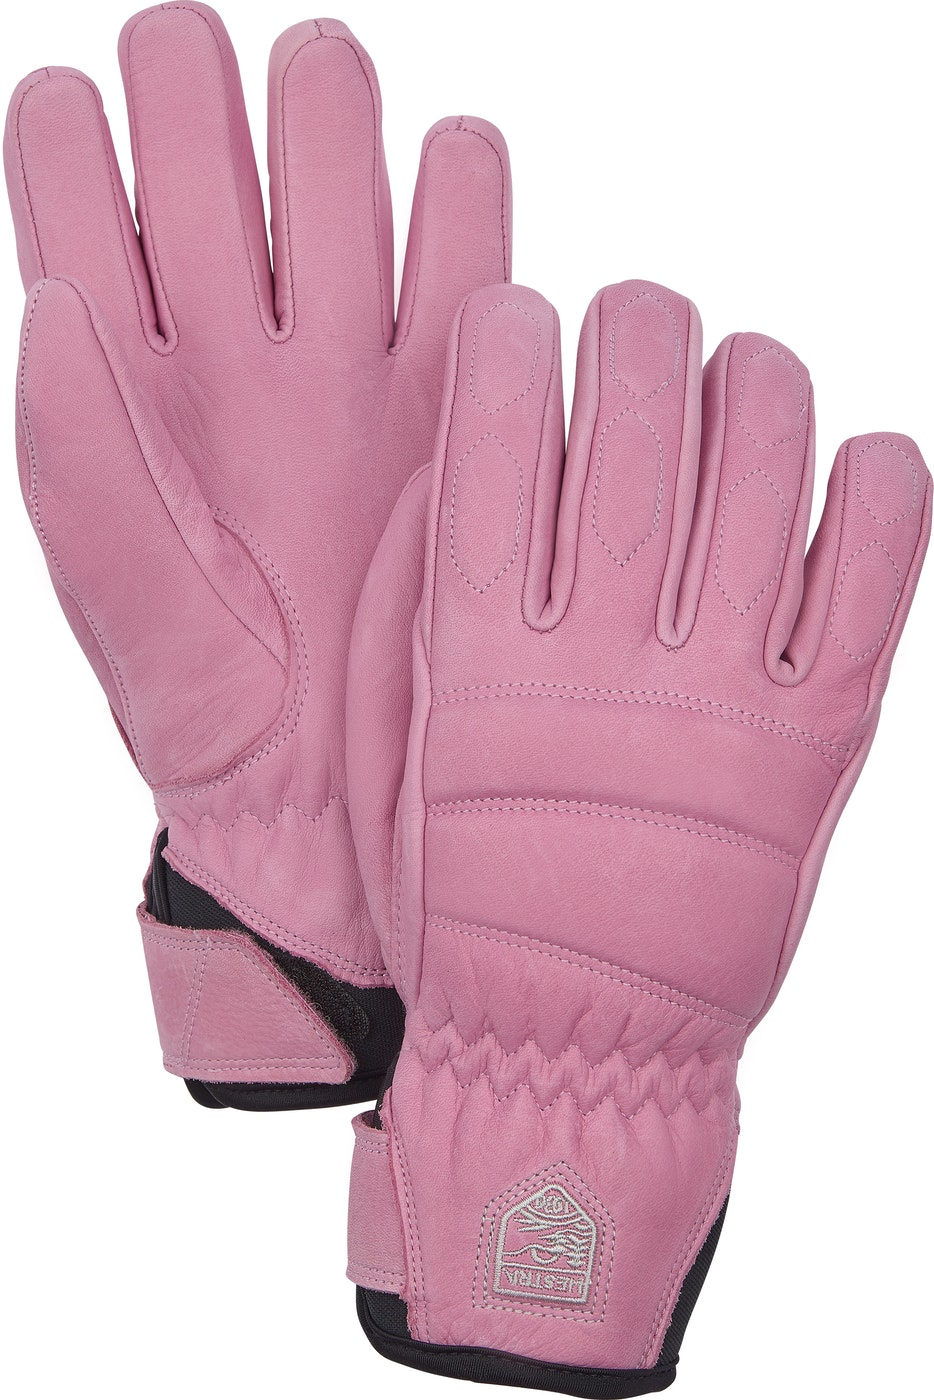 Product image for 30280 Women's Fall Line - 5 finger